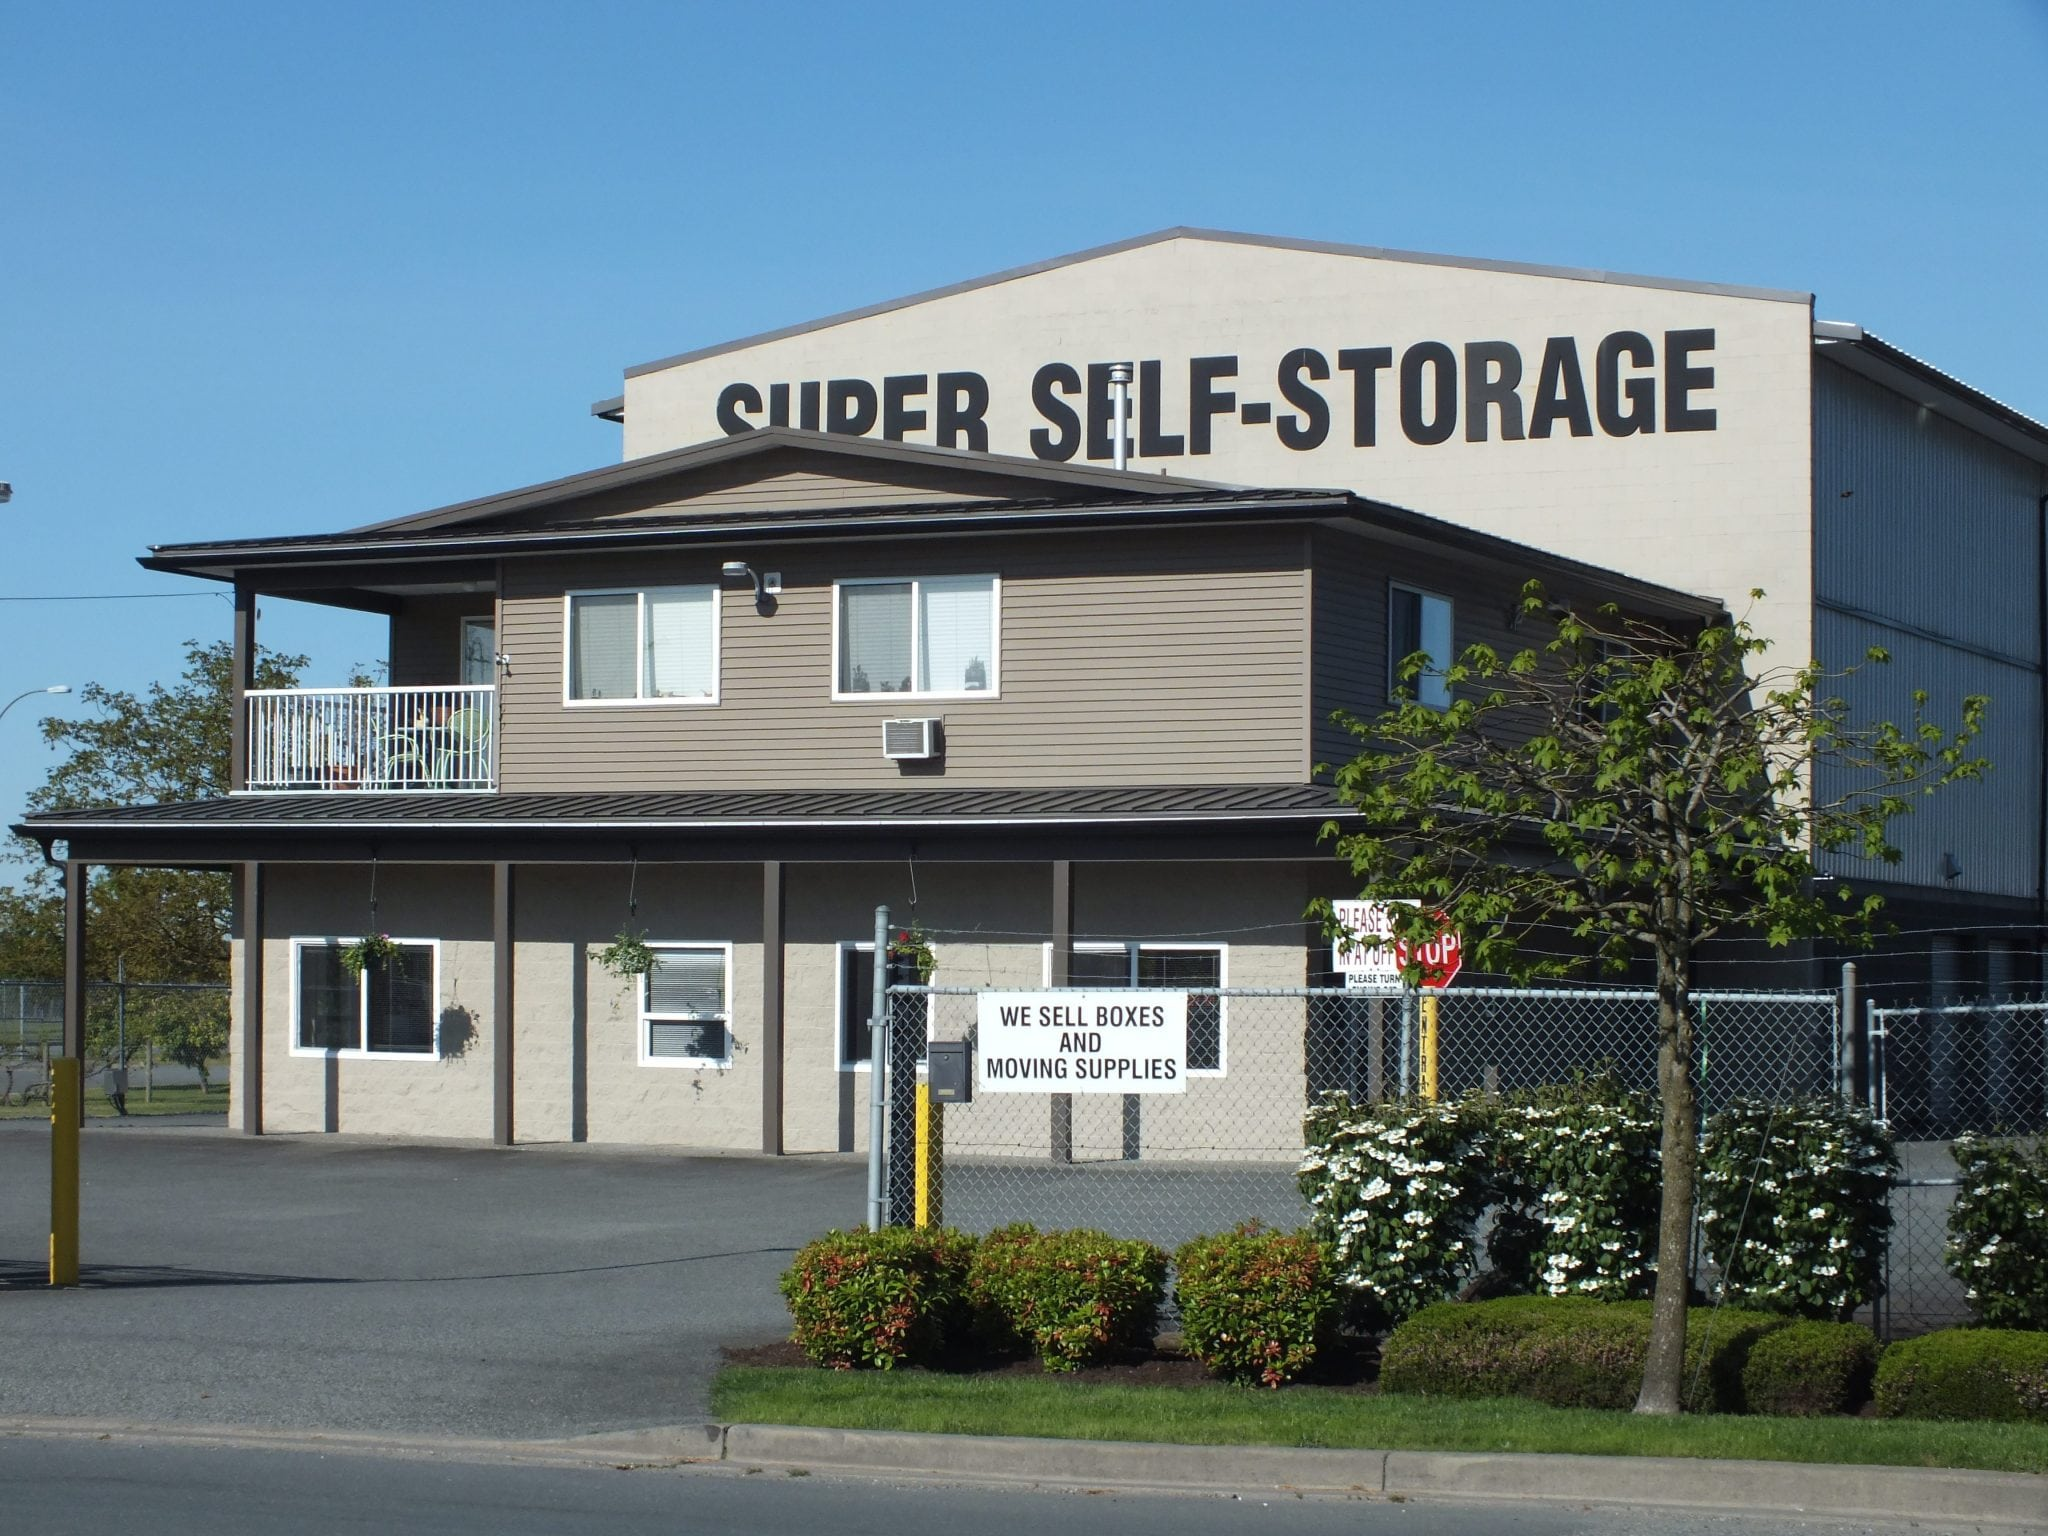 Super Self-Storage on Townline Rd. in Abbotsford